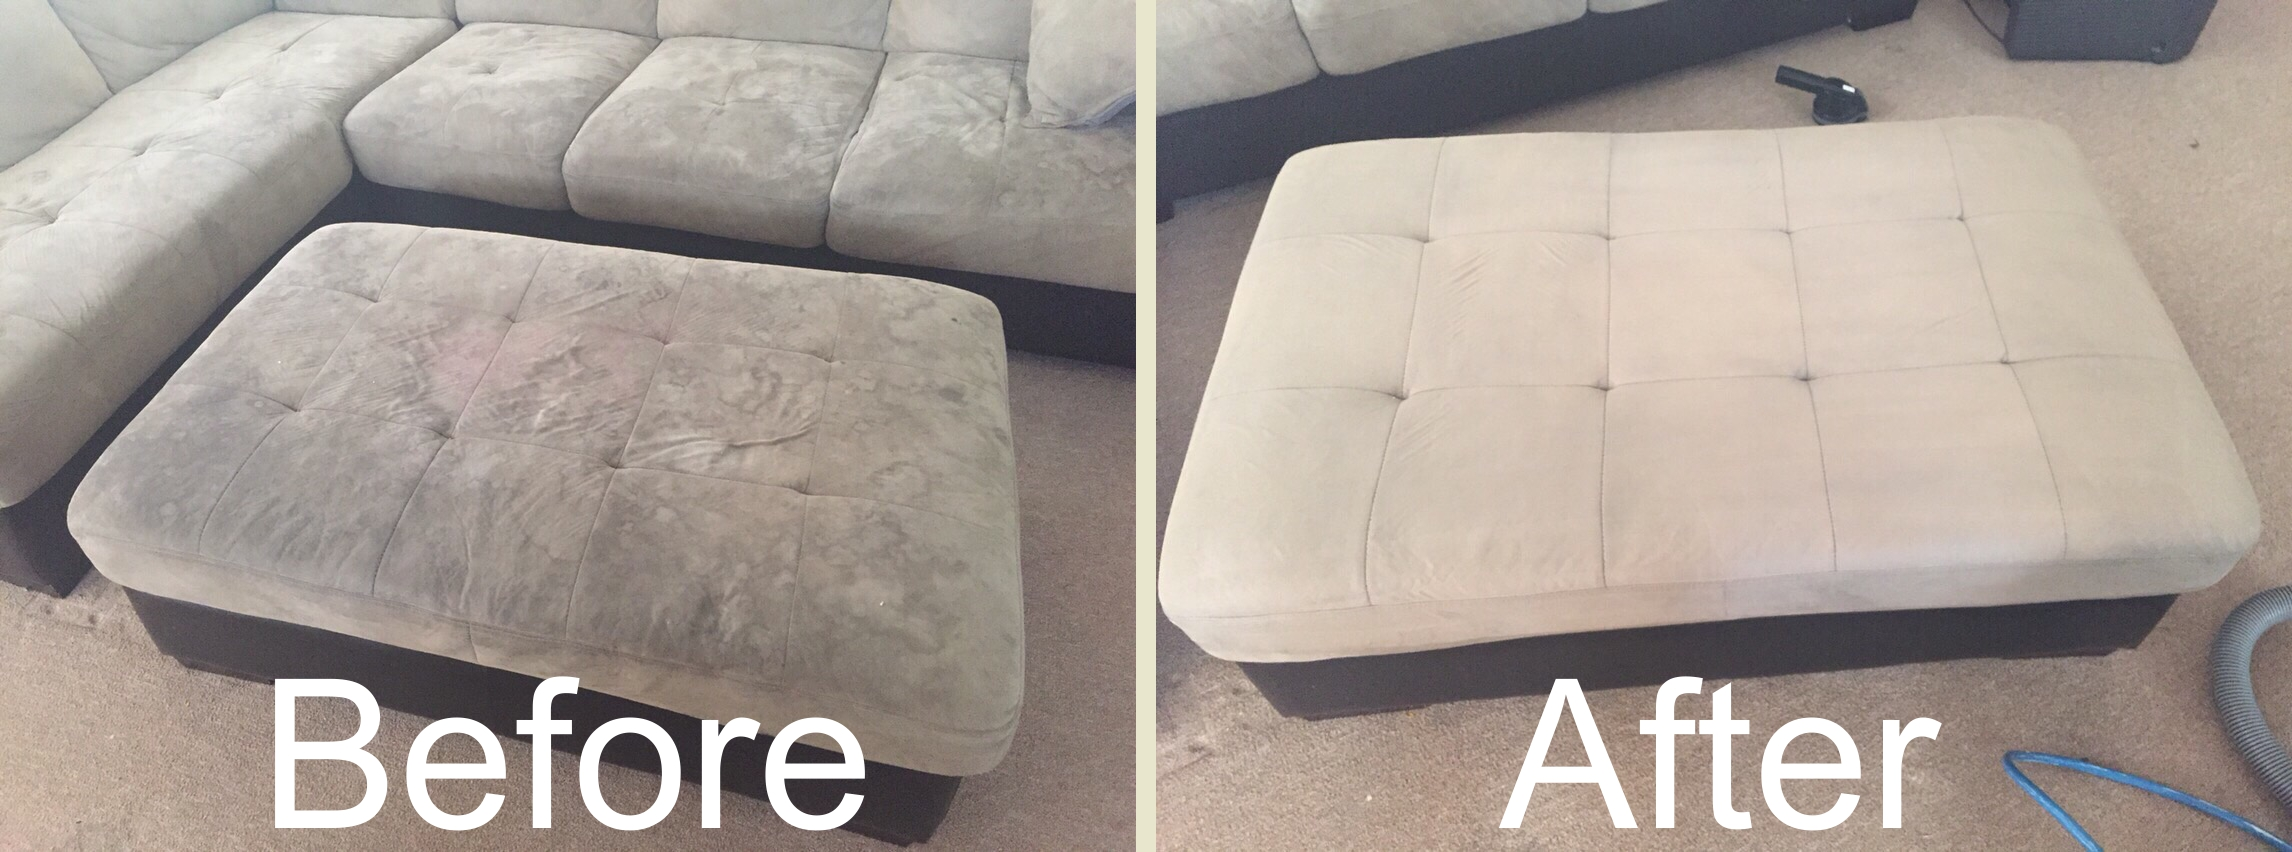 Upholstery Cleaning Chicago Sofa & Love Seat 98 95